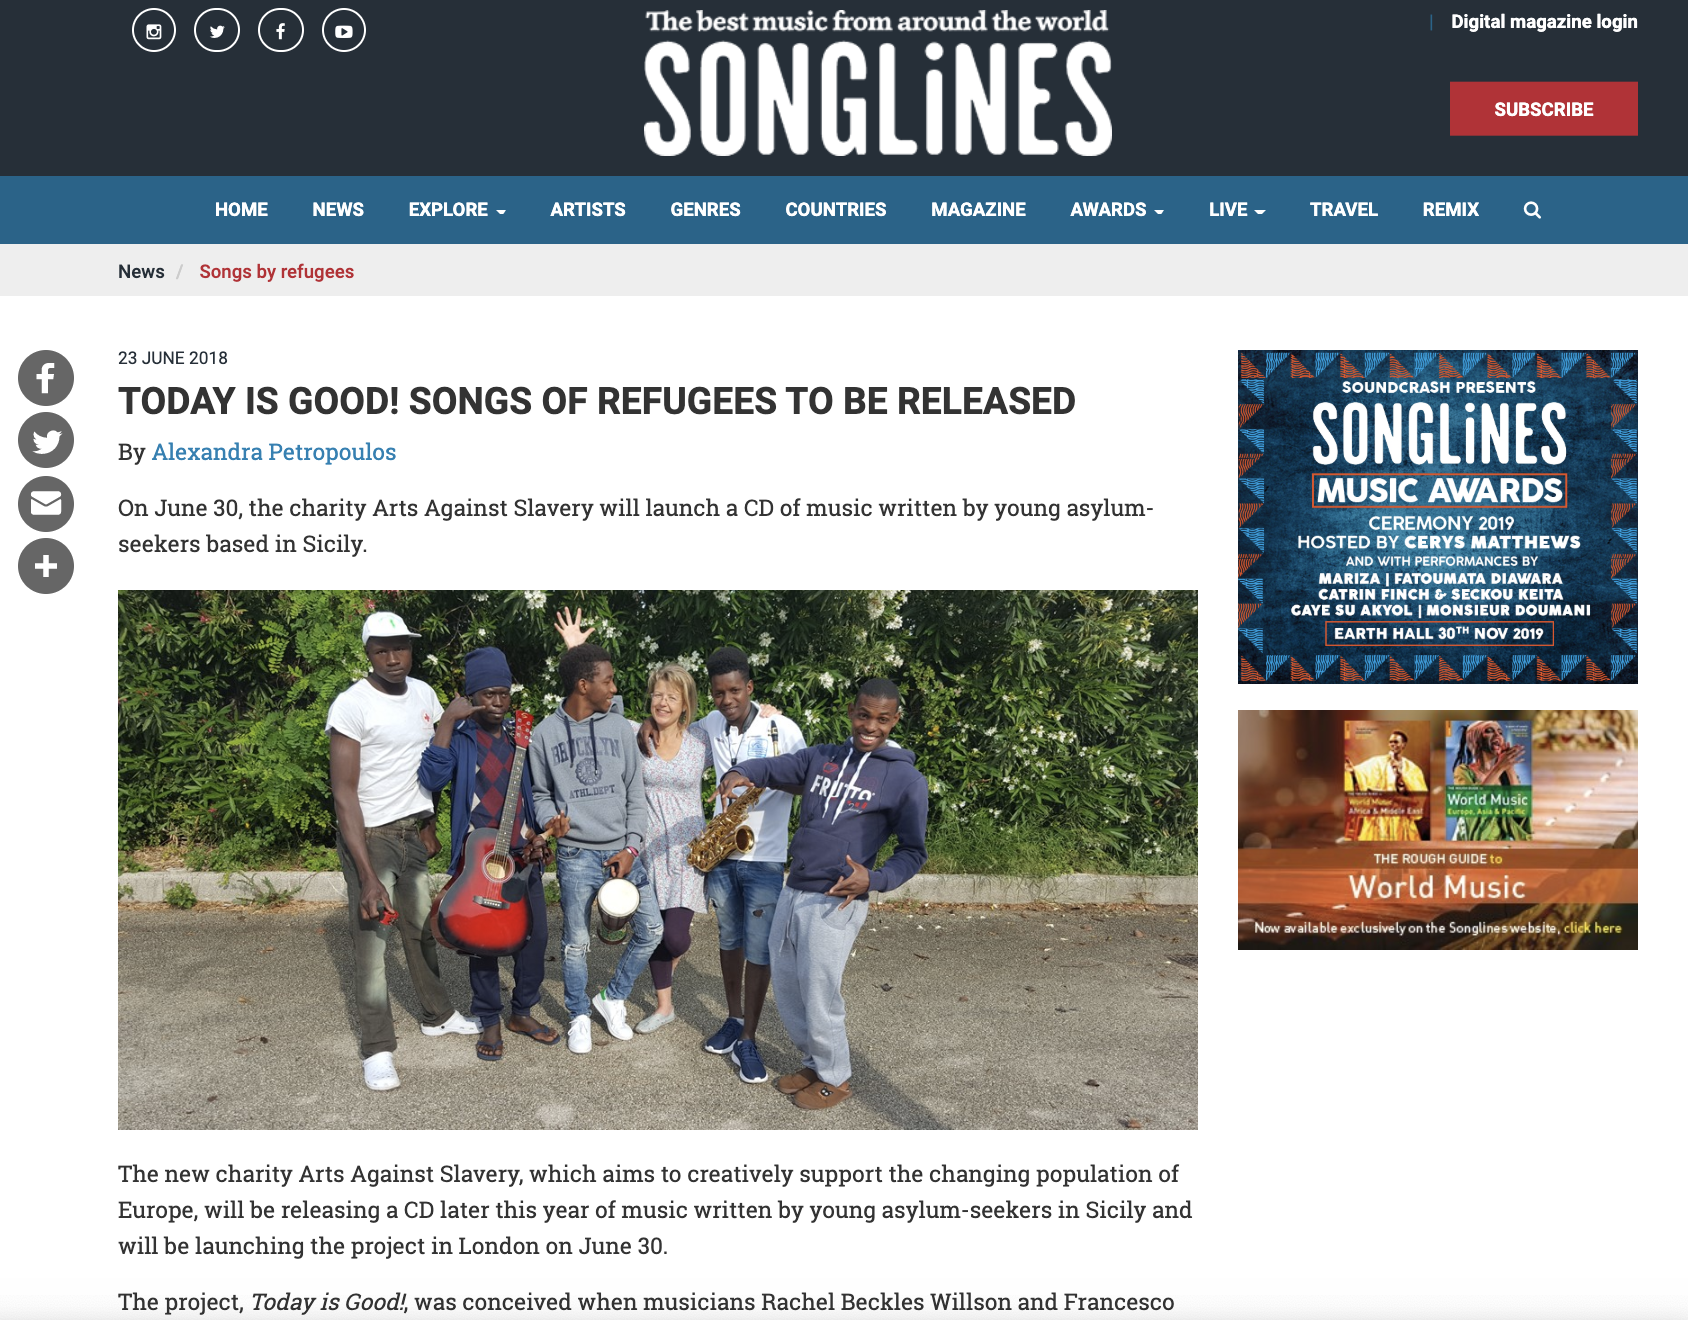 Songlines article